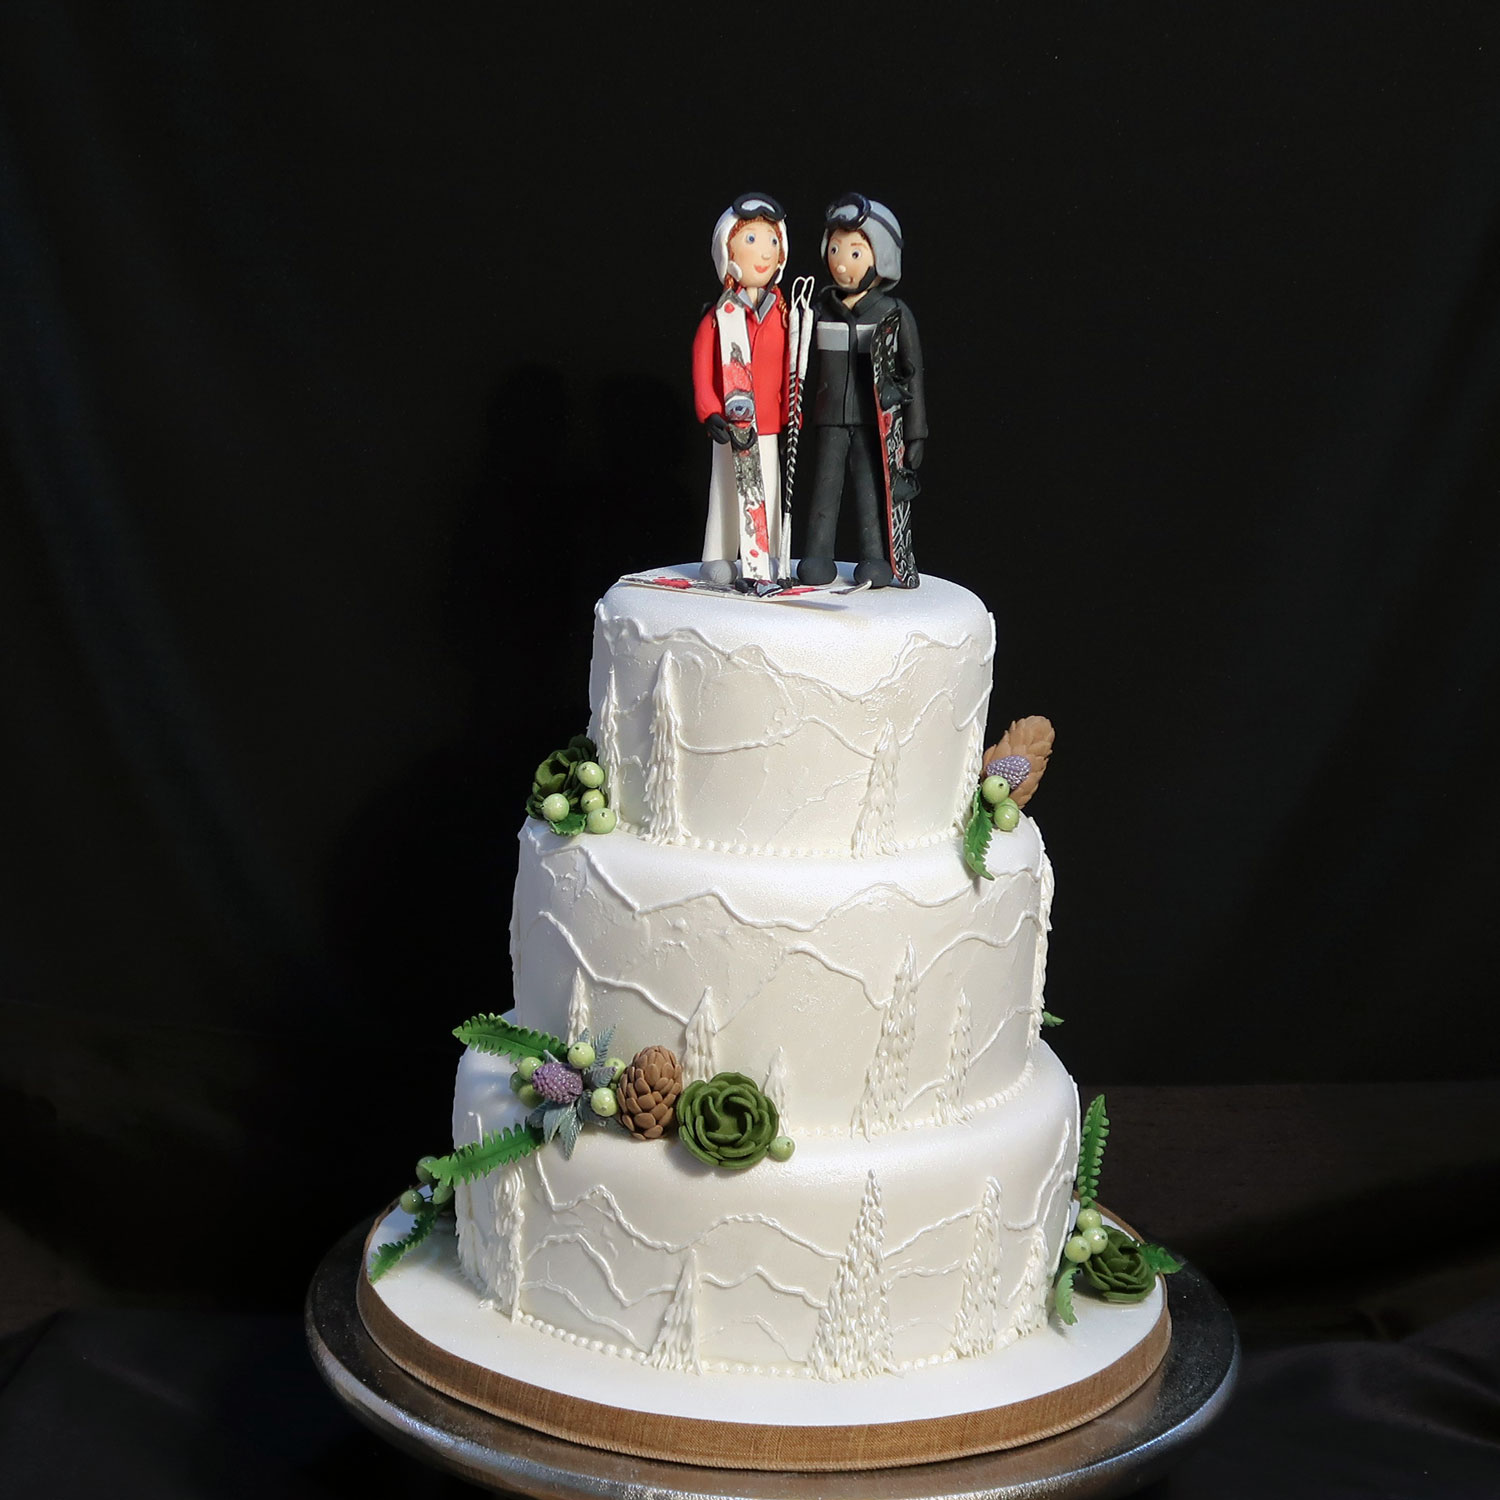 Skiing Themed Wedding Cake